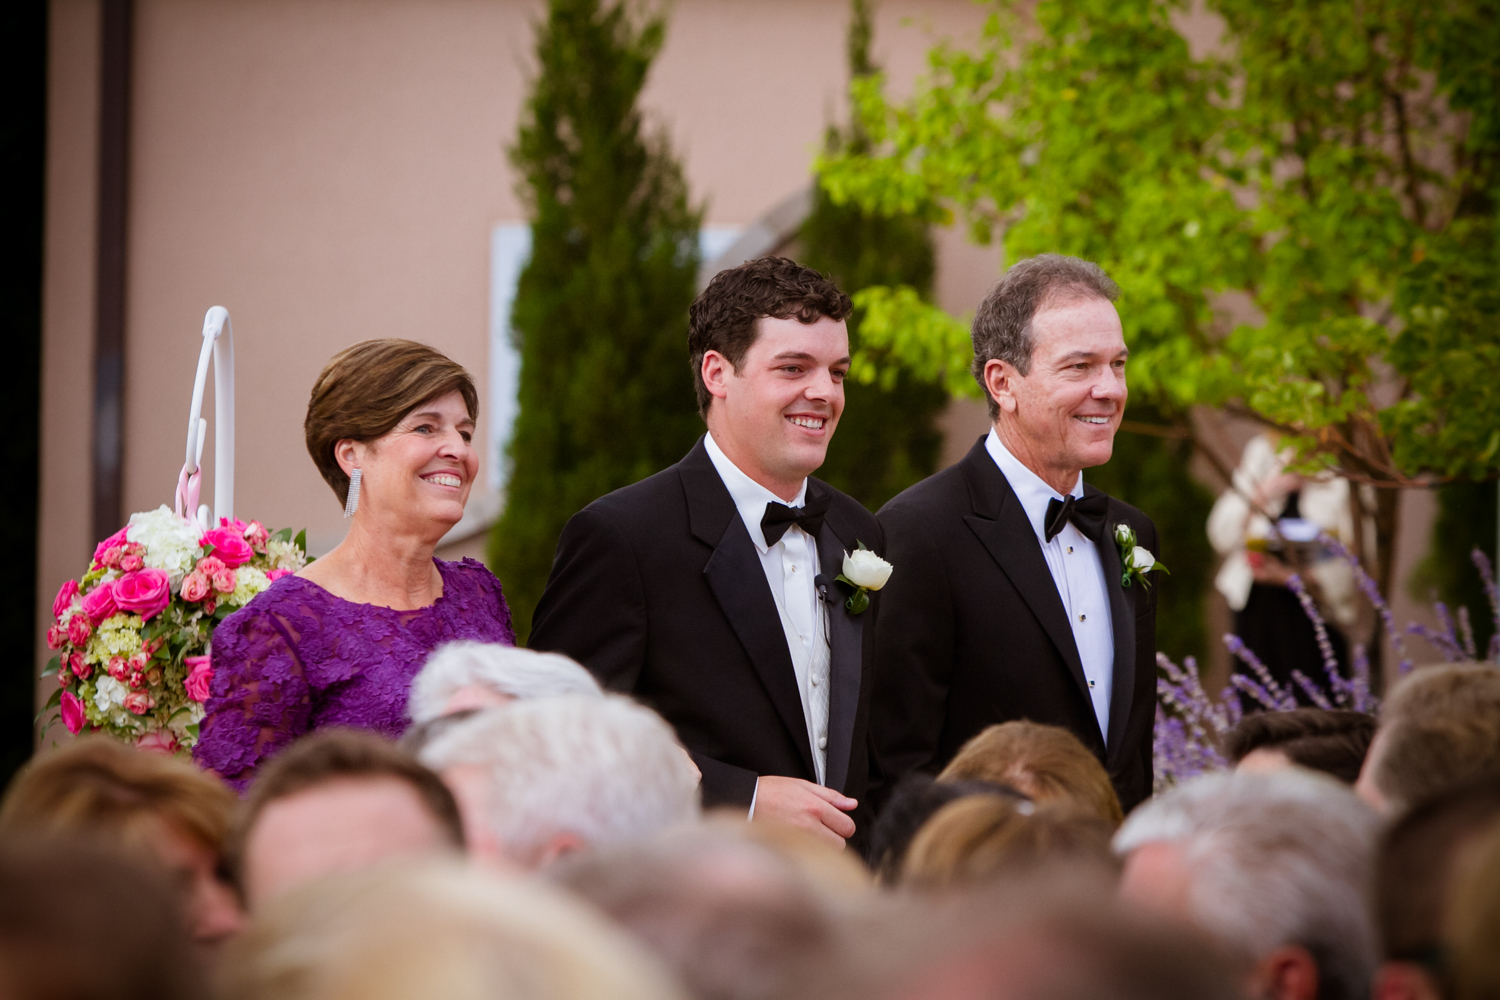 PaigeEden_Weddings_Broadmoor_018.jpg